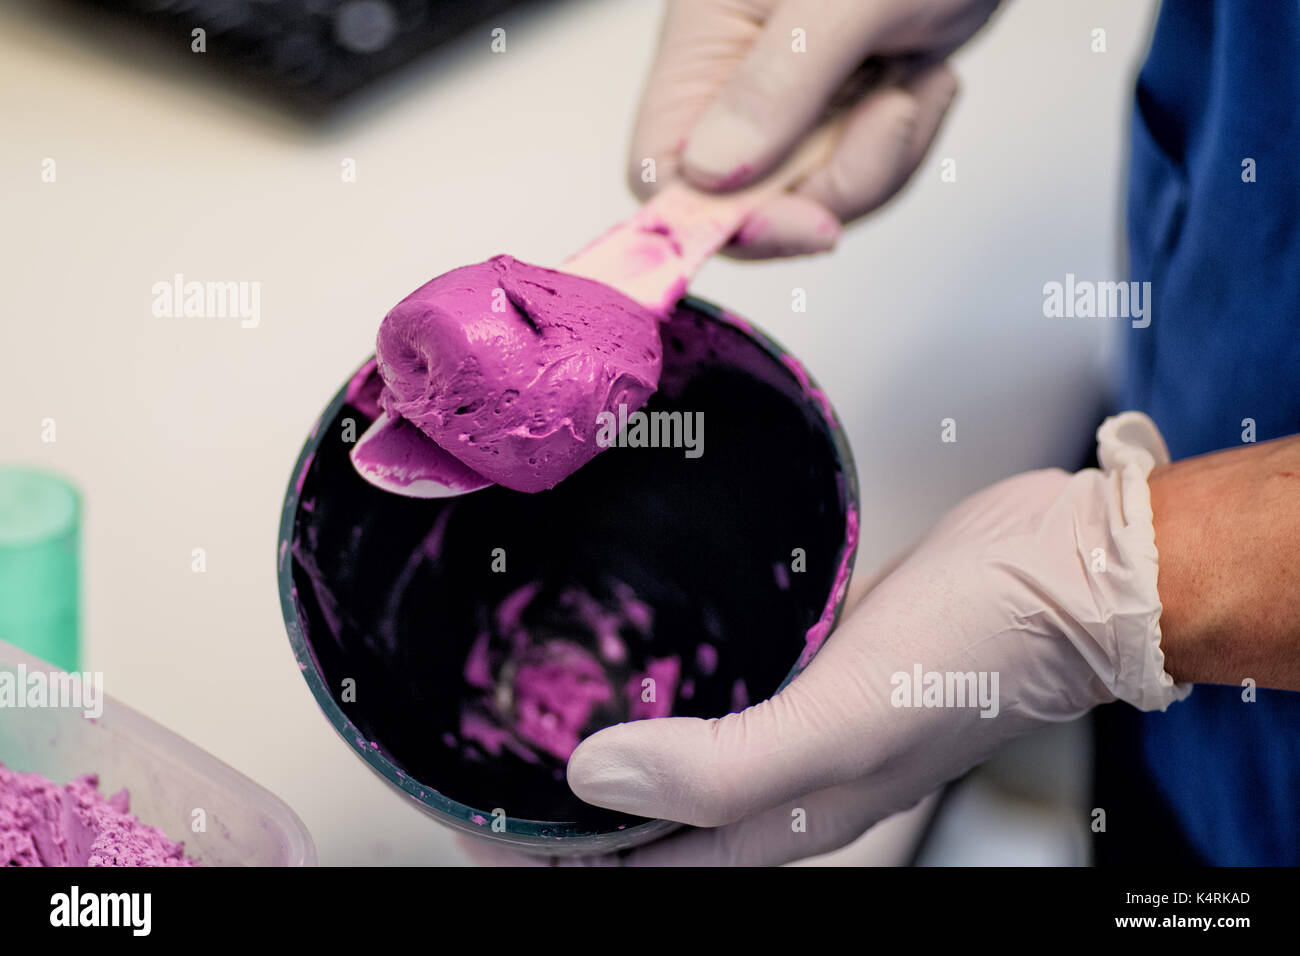 Mixed Dental Alginate Impression material used to make negative impressions of the teeth and soft tissues in the Stock Photo